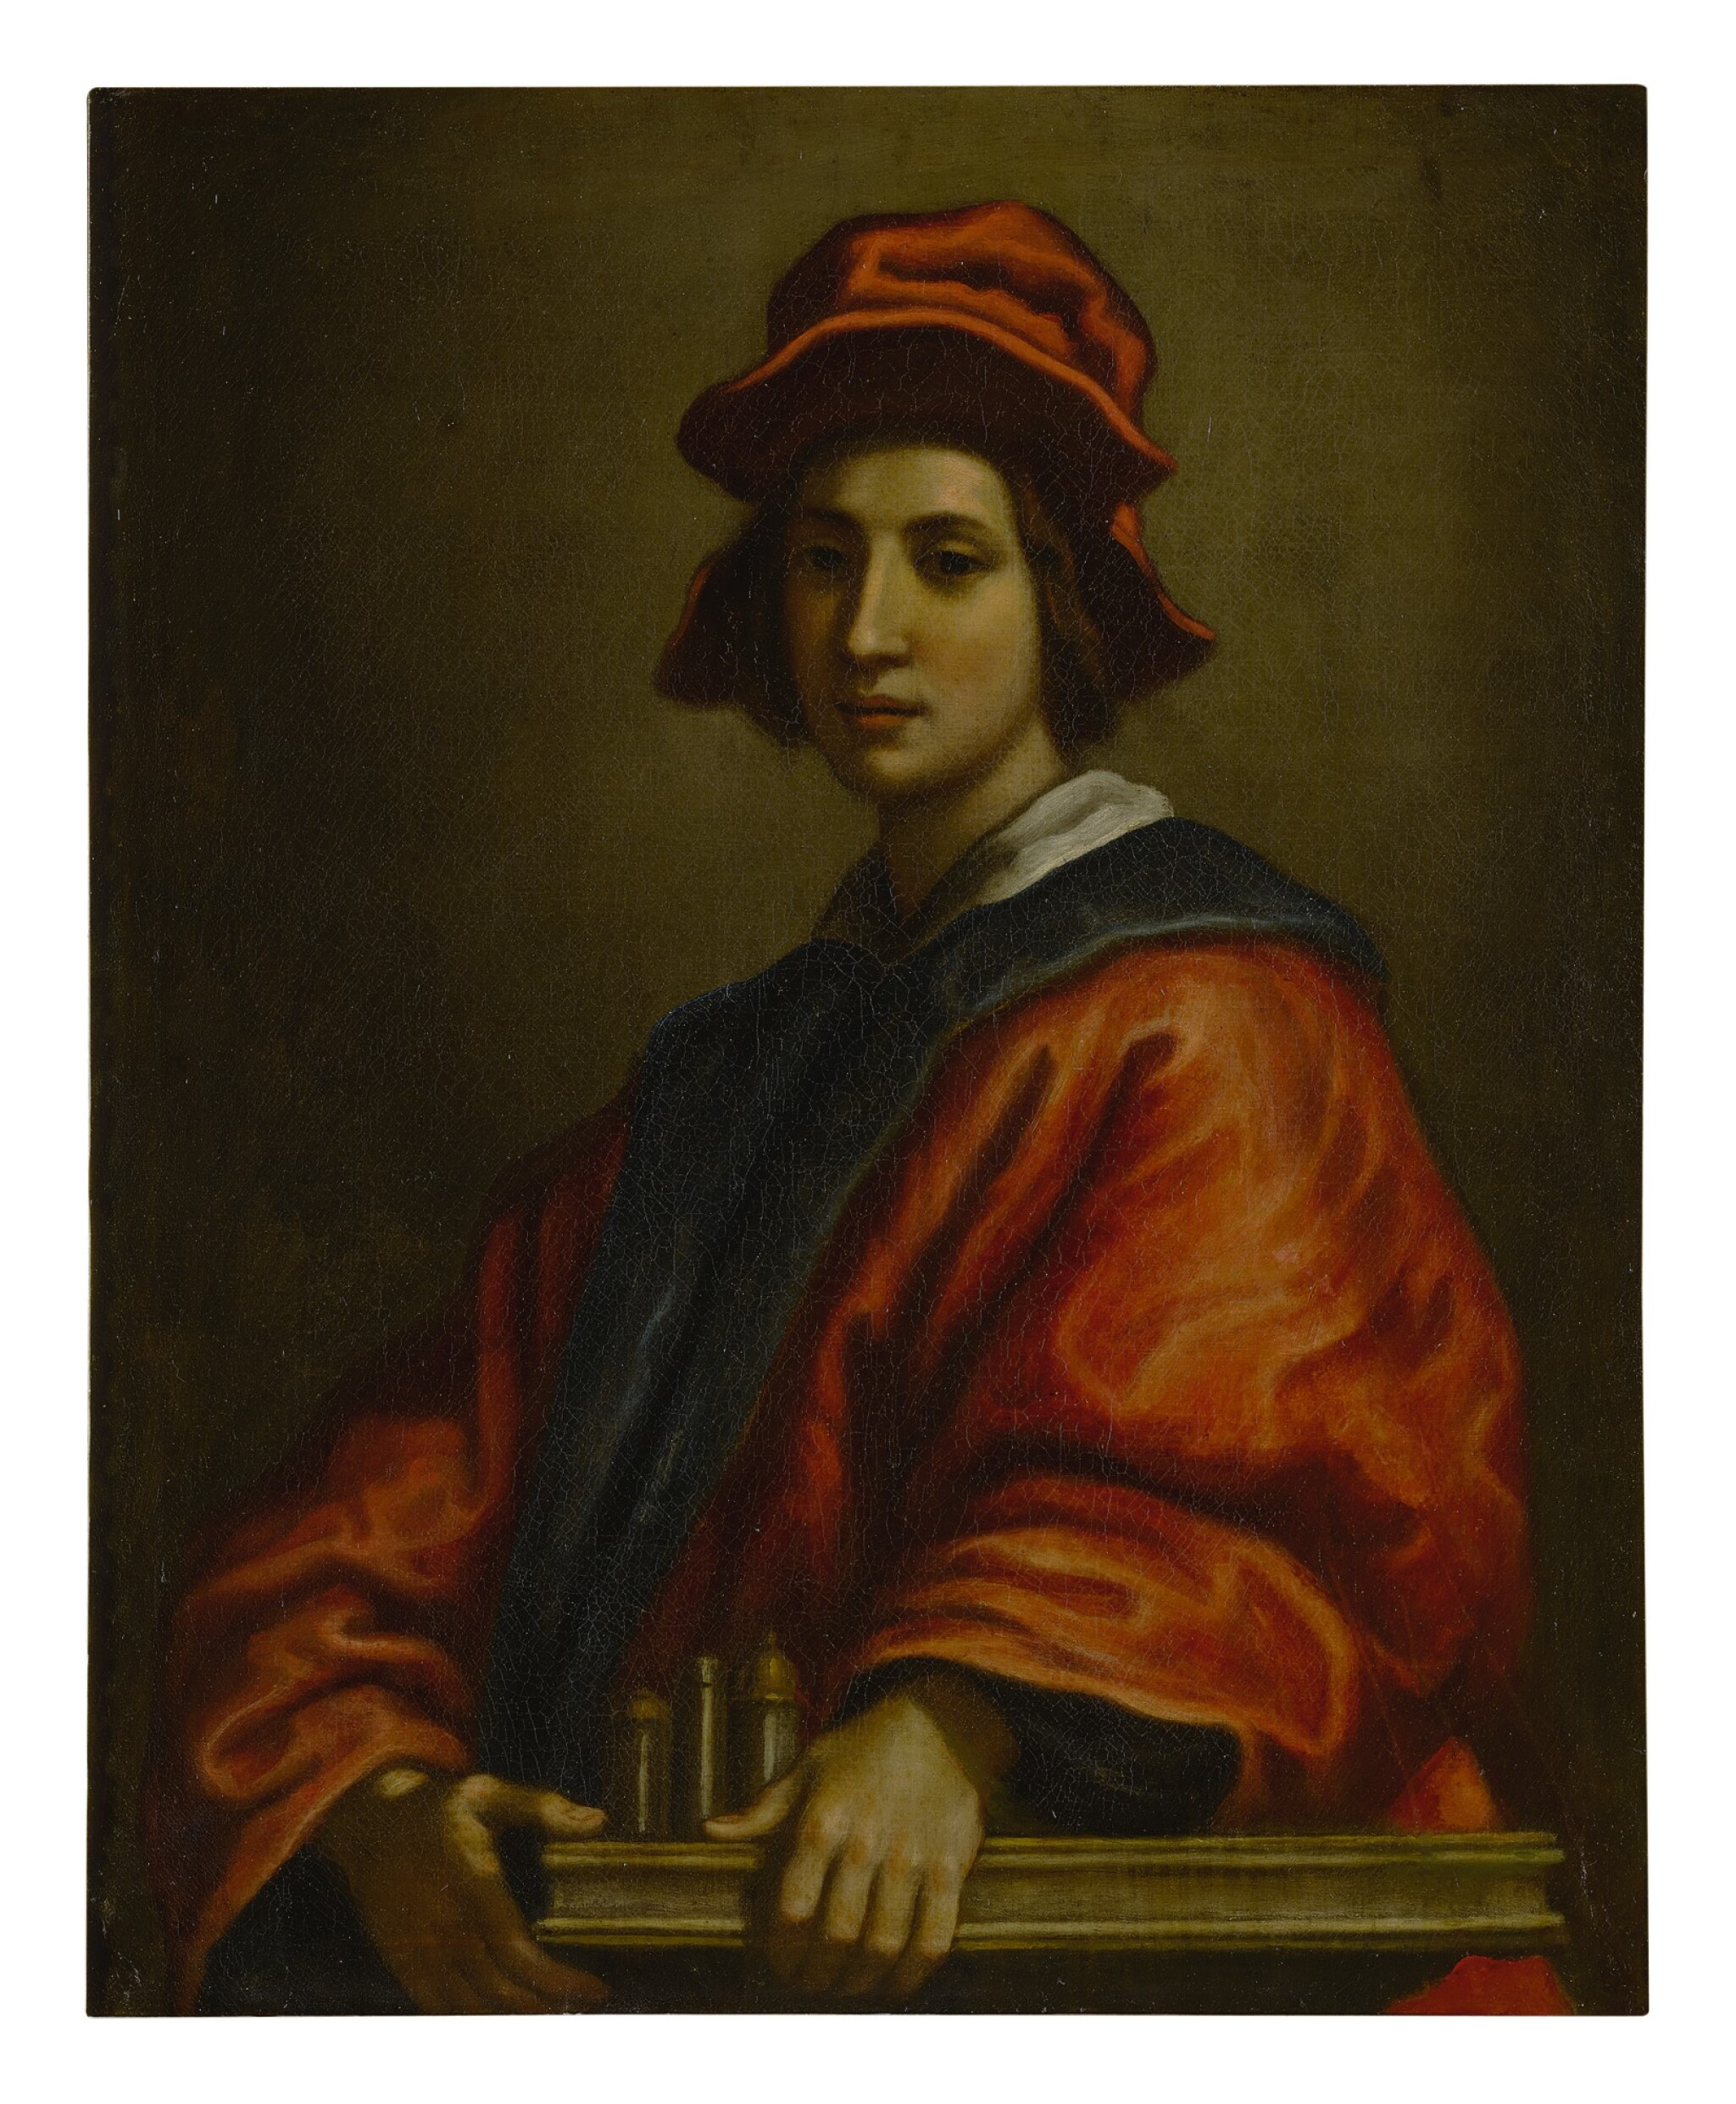 View full screen - View 1 of Lot 601. FRANCESCO CURRADI | PORTRAIT OF A YOUNG MAN, POSSIBLY AN ARCHITECT, HALF LENGTH, WEARING A RED HAT AND ROBE.